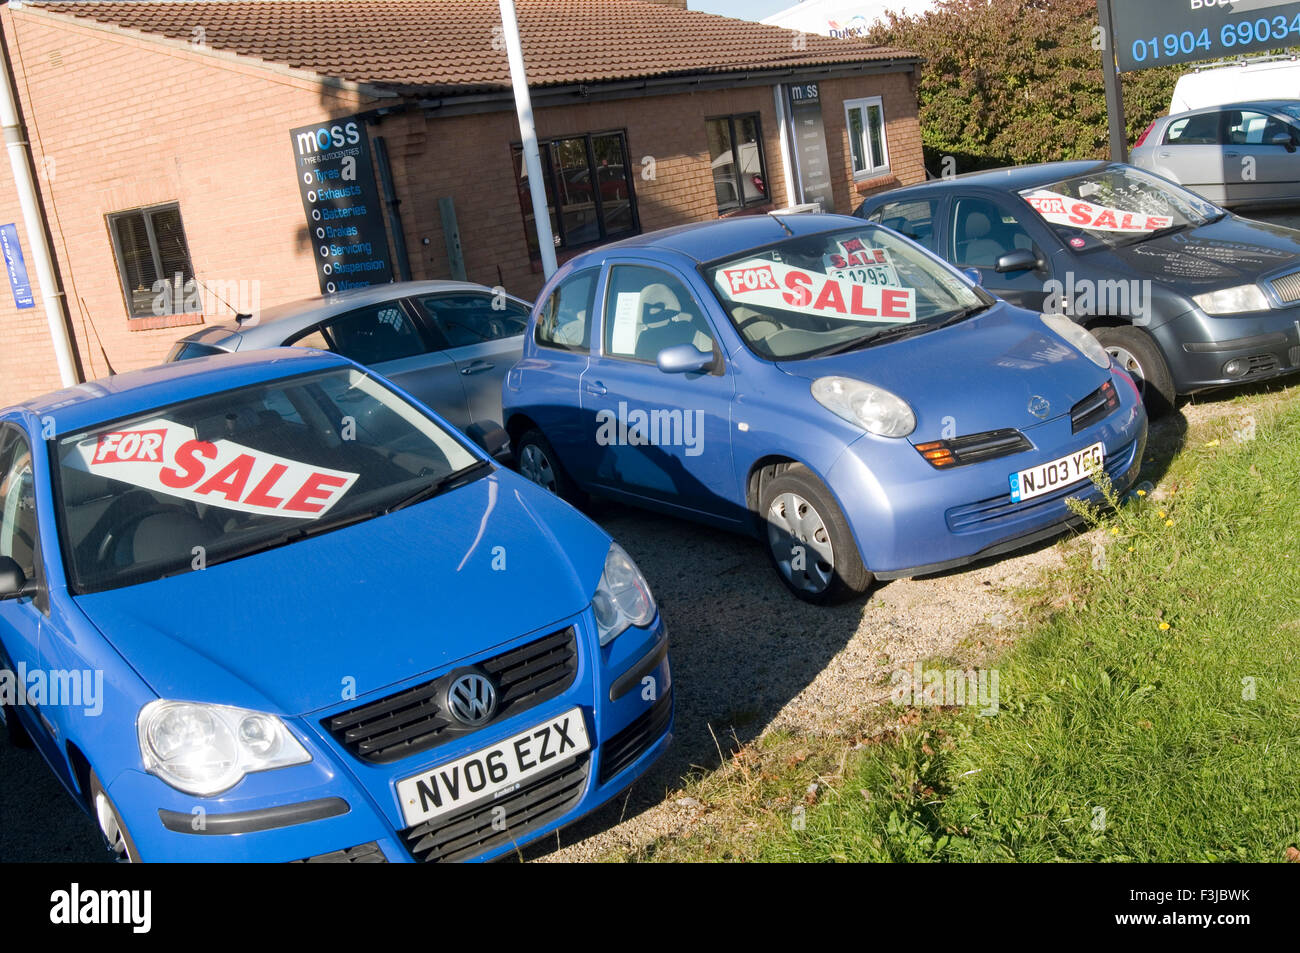 Cheap Car Lots >> Cheap Car Cars Second Hand Secondhand Dodgy Car Dealers Dealer Used